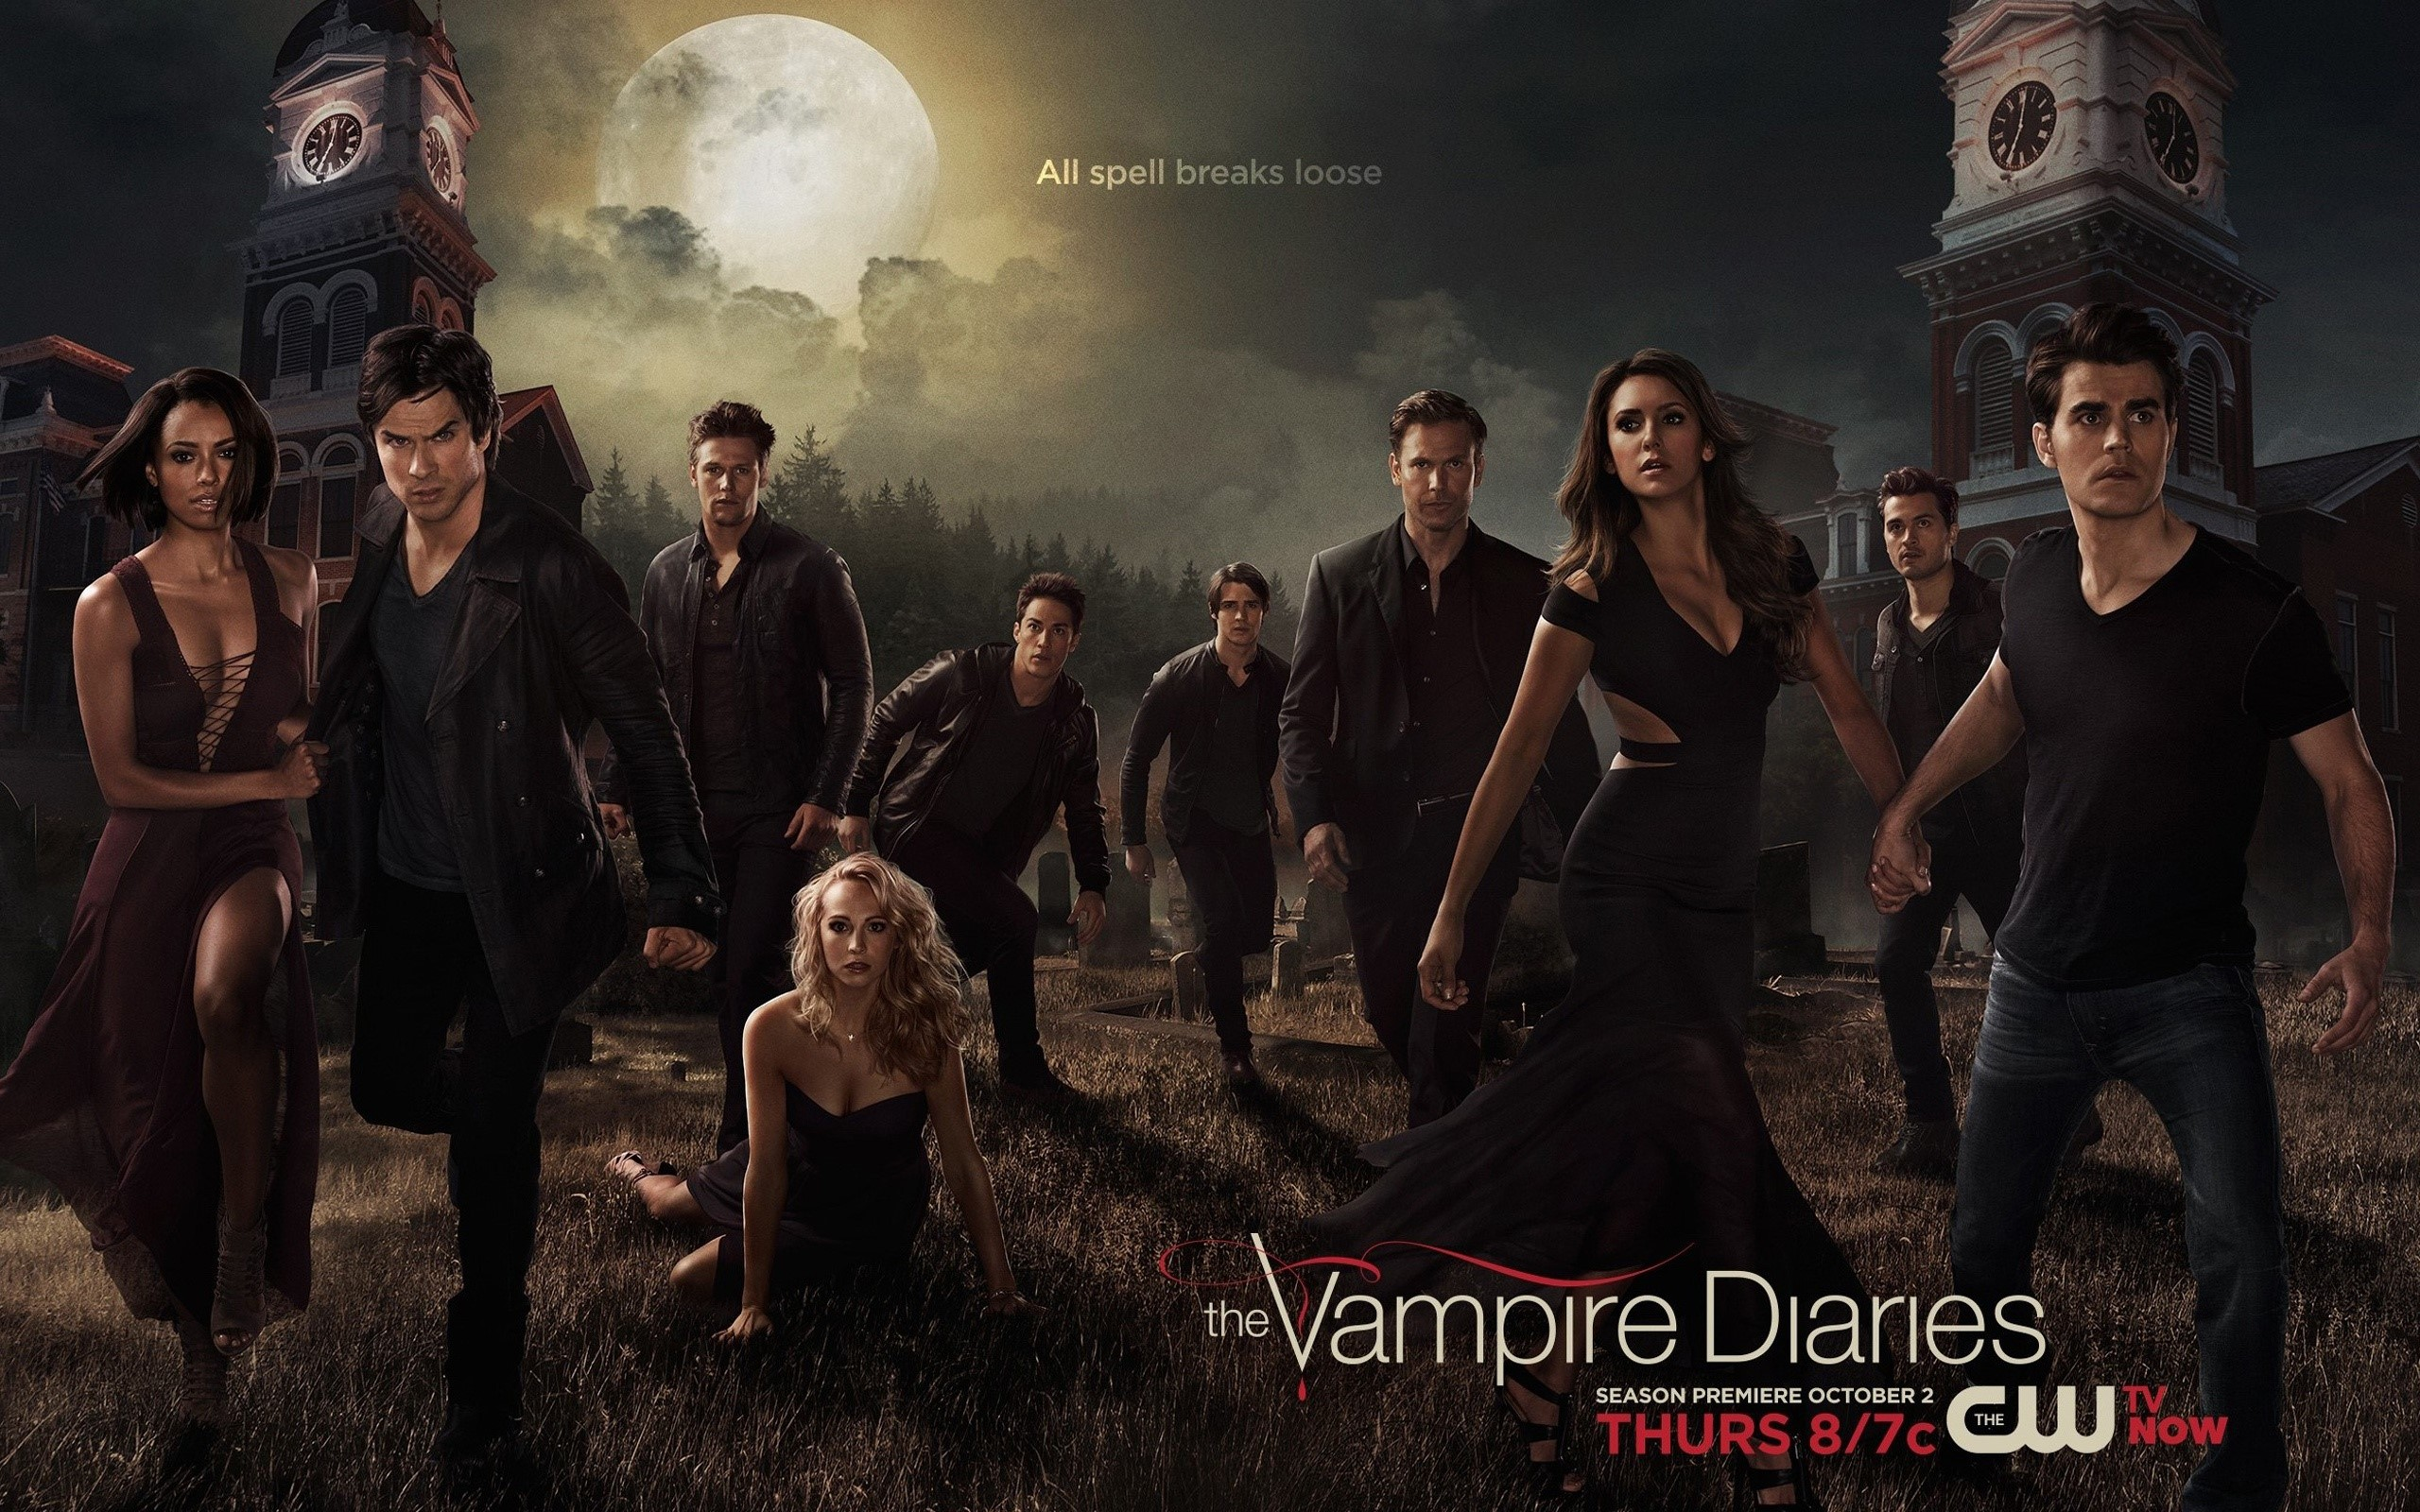 Fondos de pantalla The vampire Diaries still de la temporada 6